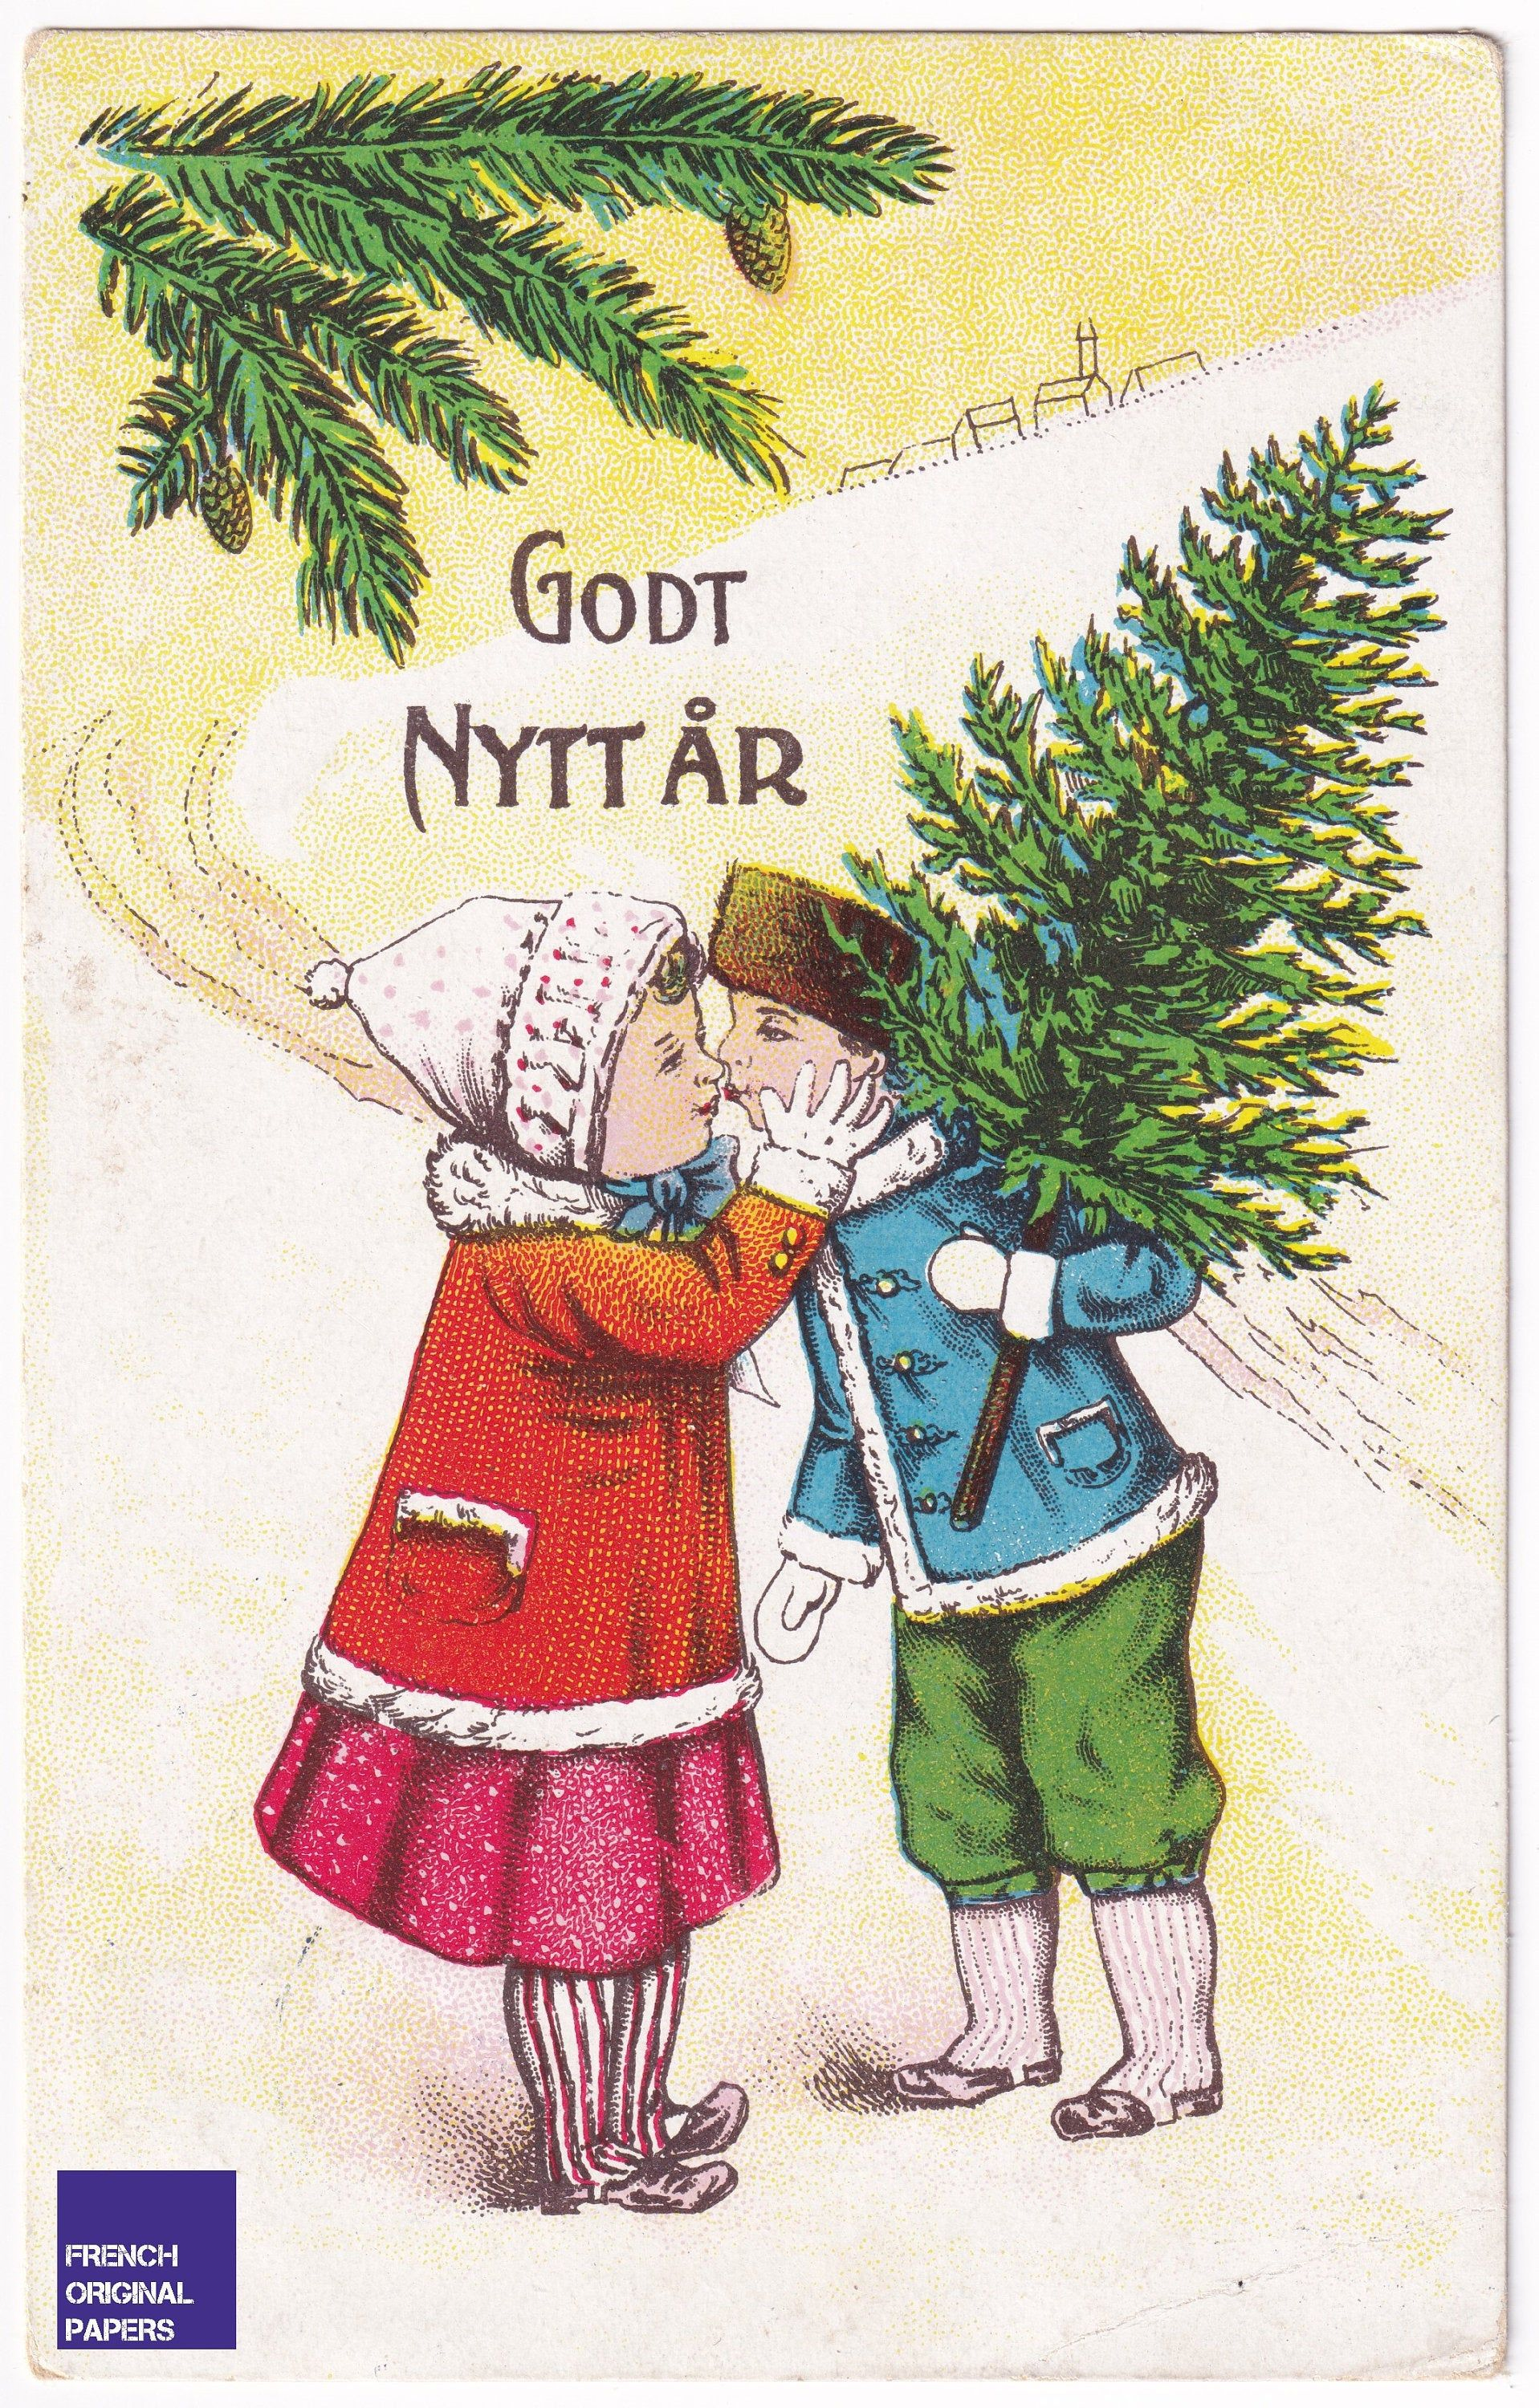 Vintage Swedish Greeting Postcard 1910s Happy New Year Beautiful Illustrator Graphism Girl Christmas Tree French Kiss Lovers Ephemera Winter In 2020 Christmas Girl Postcard Greetings